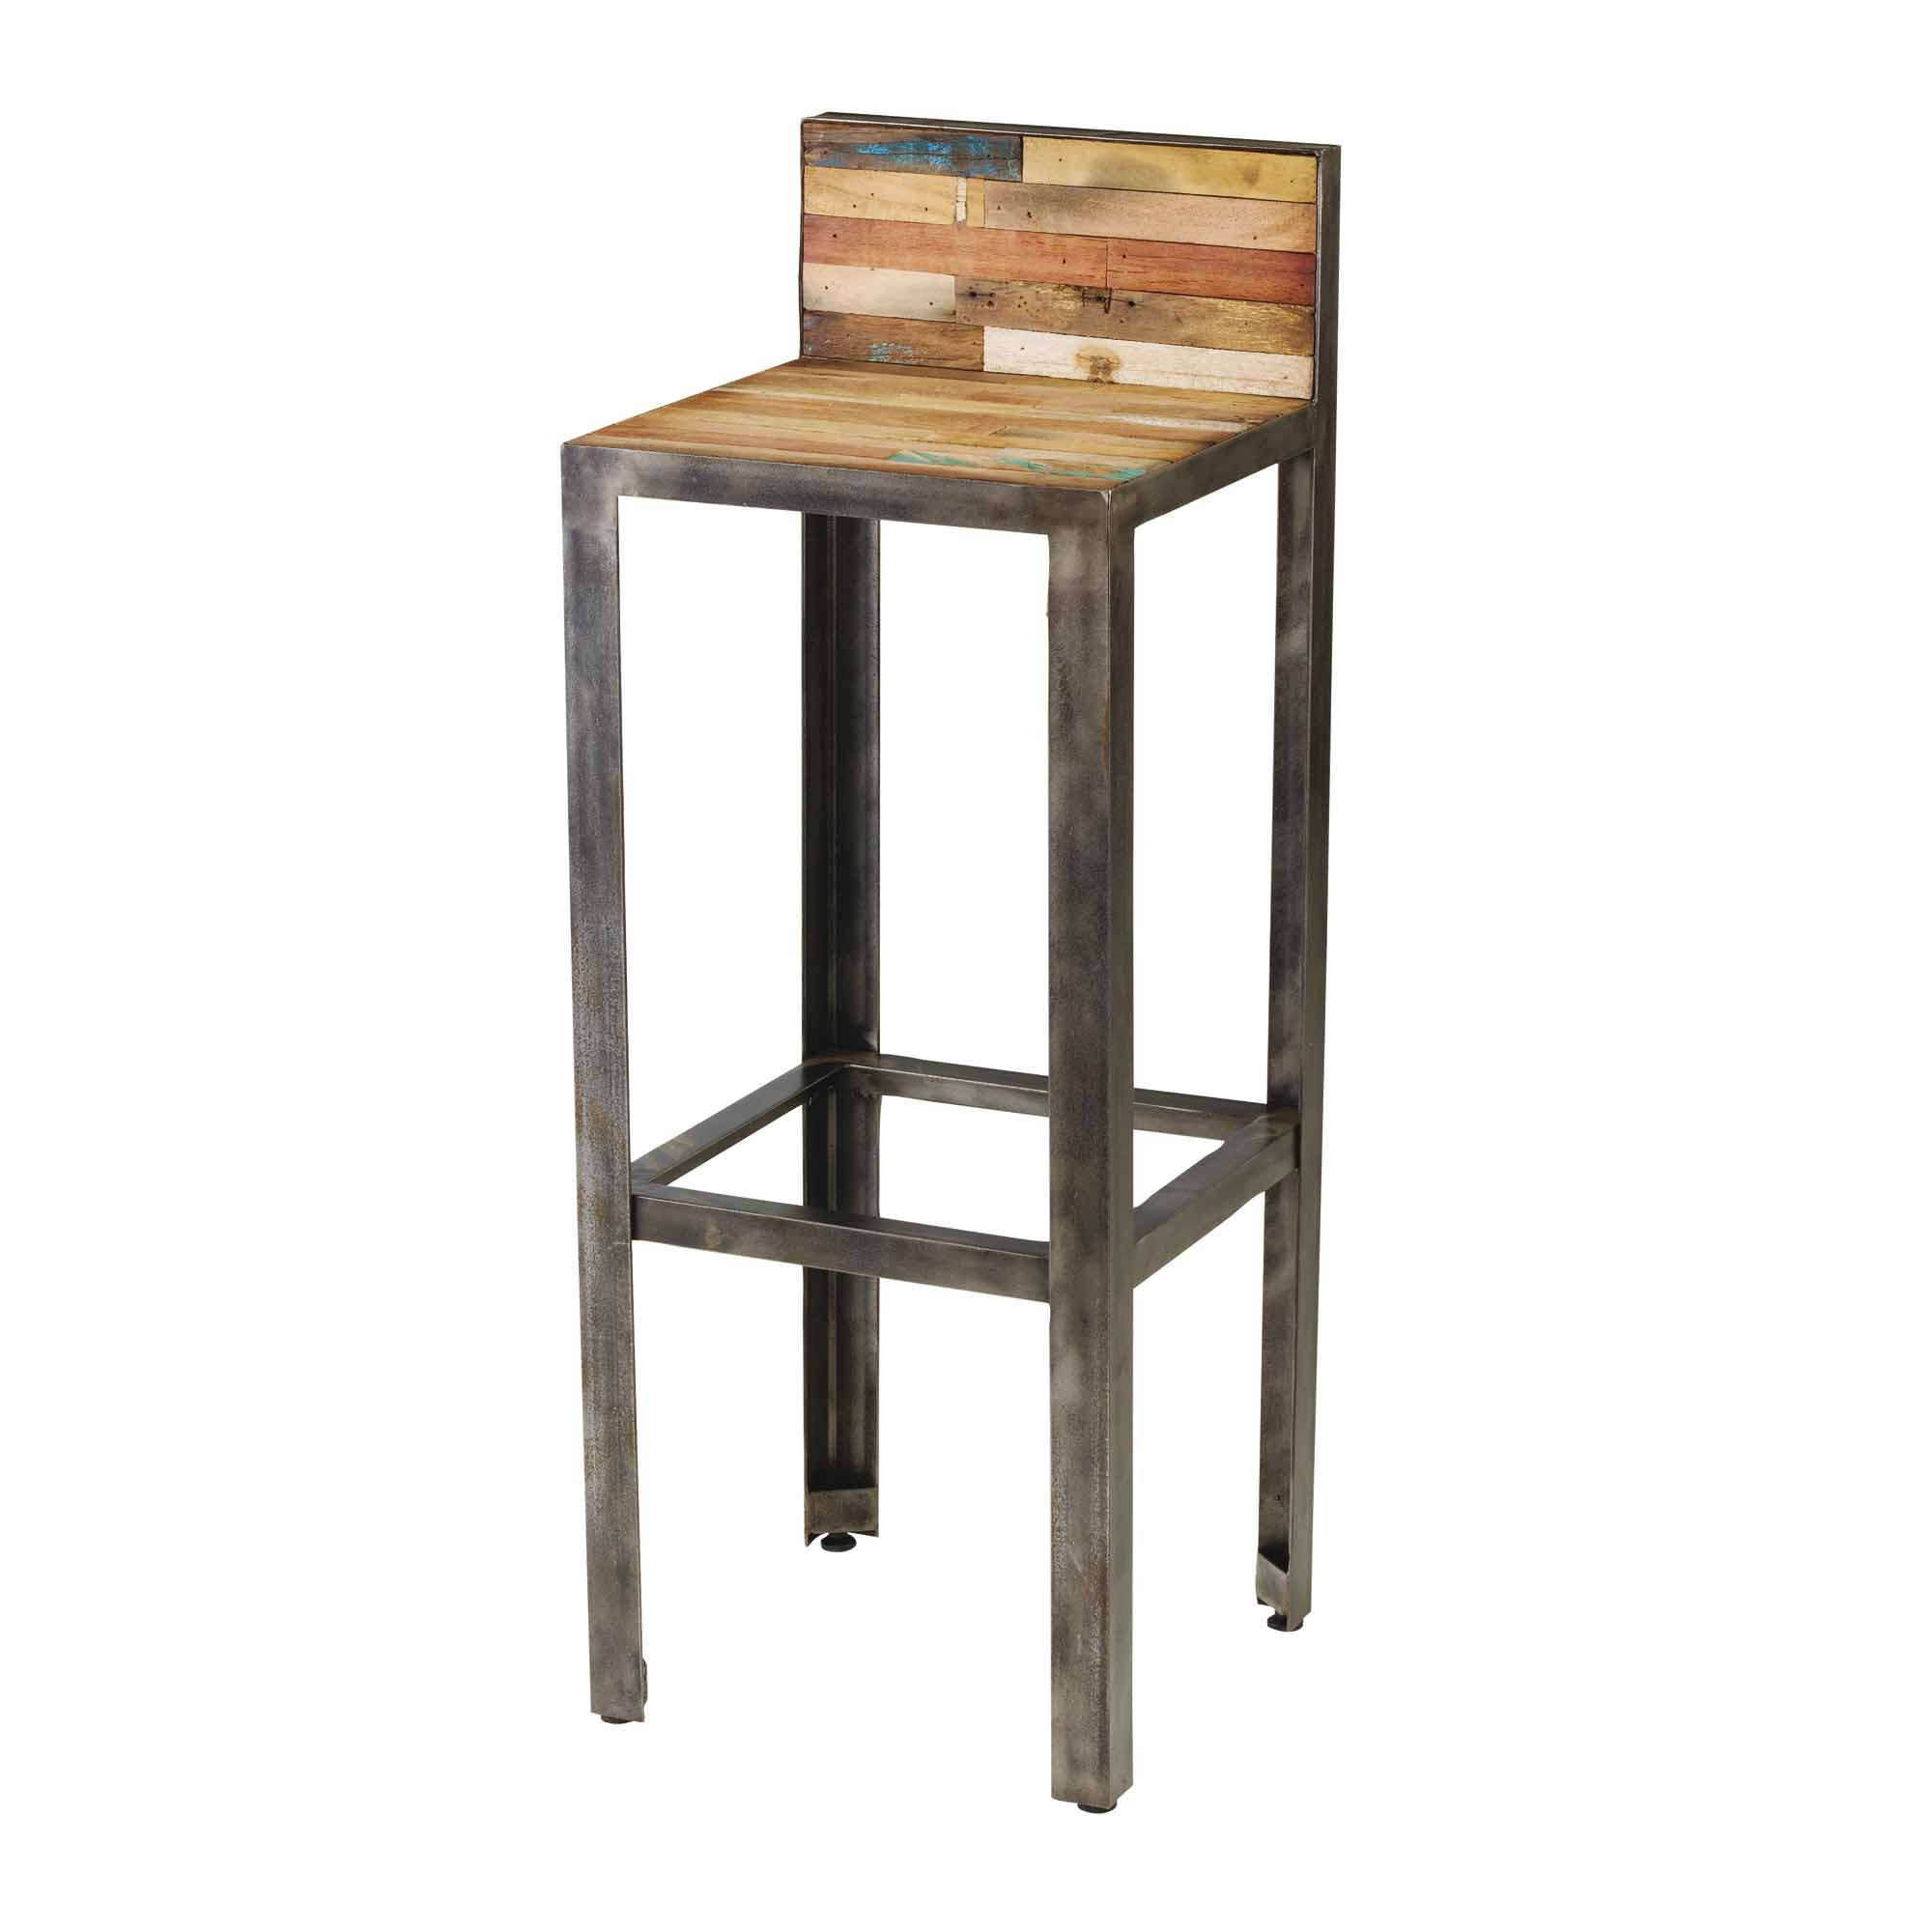 tabouret de bar bois metal design en image. Black Bedroom Furniture Sets. Home Design Ideas